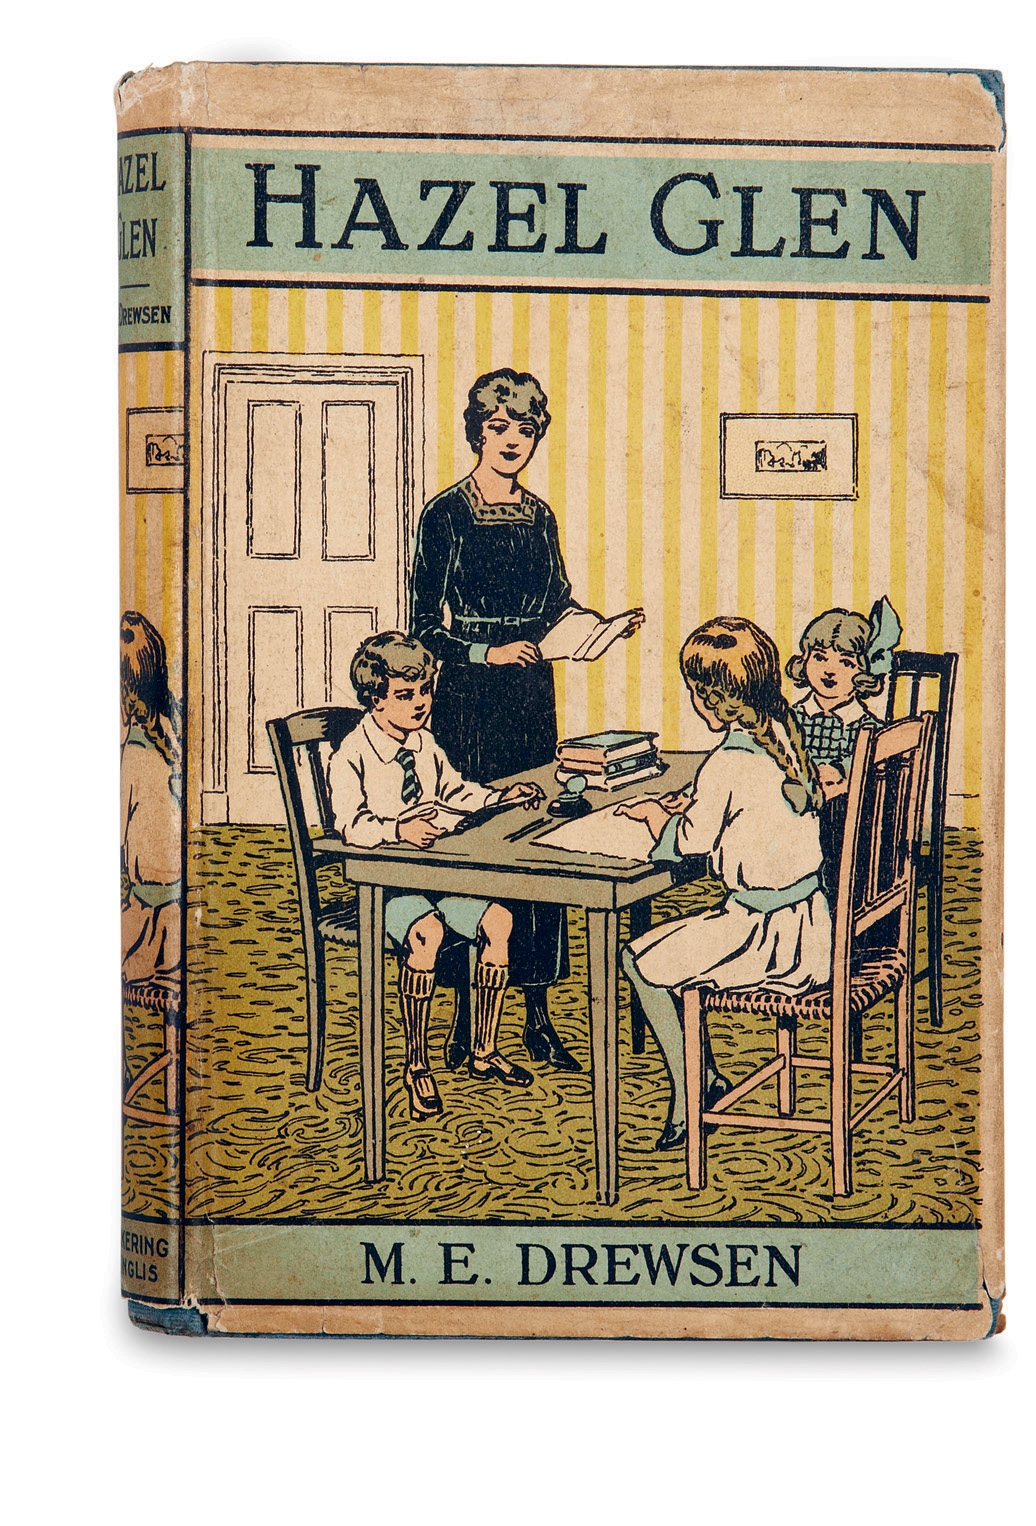 Unknown, Hazel Glen, M. E. Drewsen. Pickering & Inglis, undated. From the collection of Martin Salisbury. Photograph, Simon Pask. Although undated, this Excelsior Library edition for children was published before 1925 and is an early example of a coloured (letterpress line-block separations) narrative illustration as a promotional jacket. A section of image is extracted and repositioned on the spine. The artist is not credited.